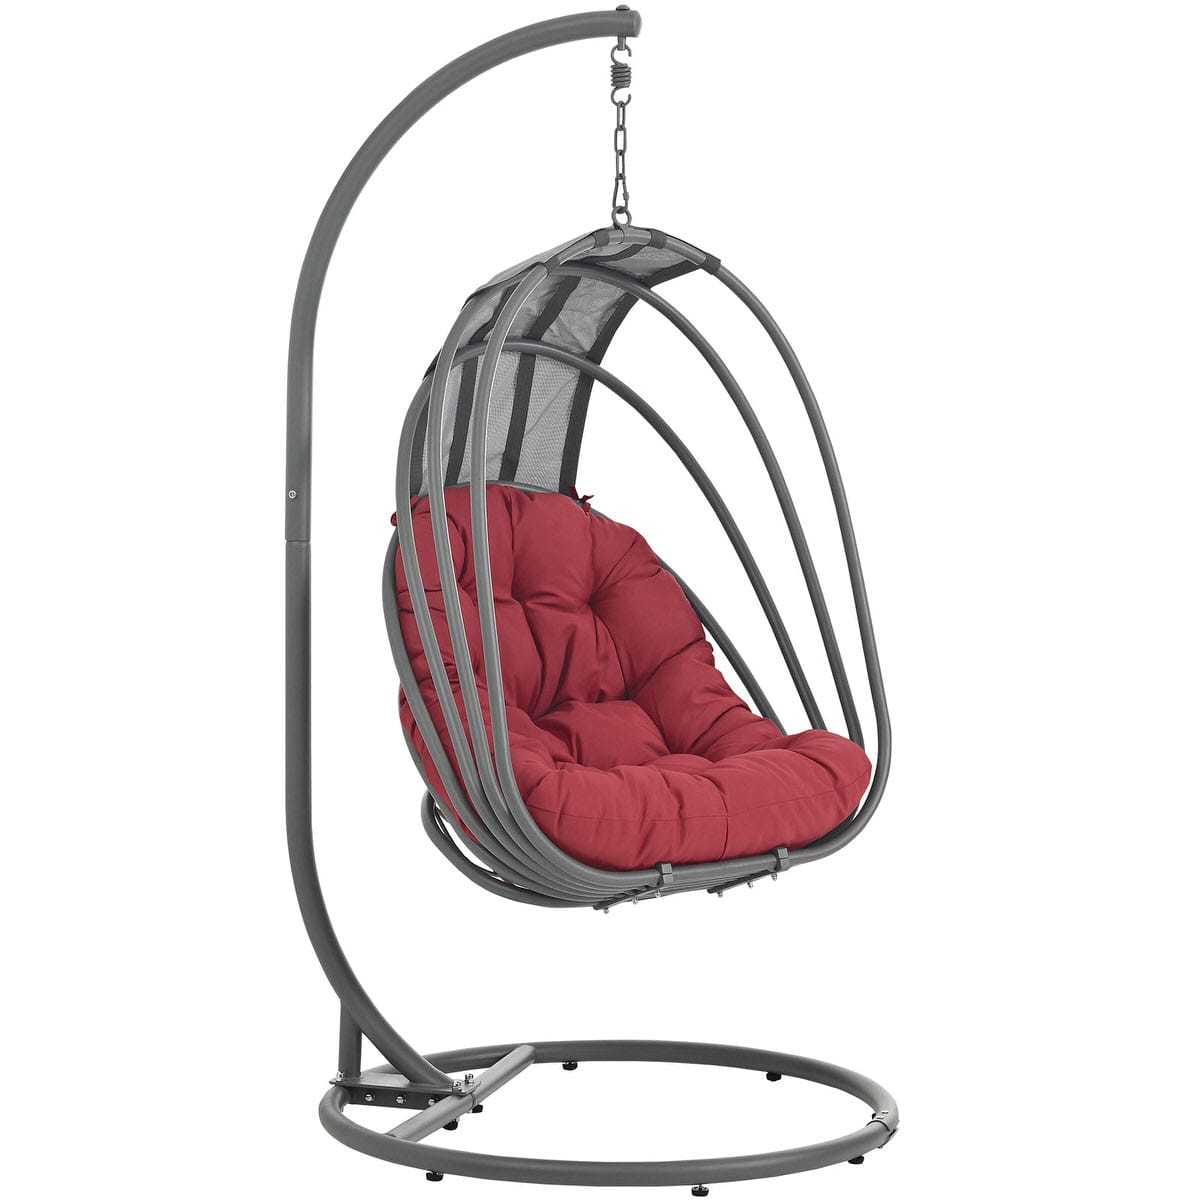 Whisk Outdoor Patio Swing Chair With Stand Red By Modern Living (Modern  Living)